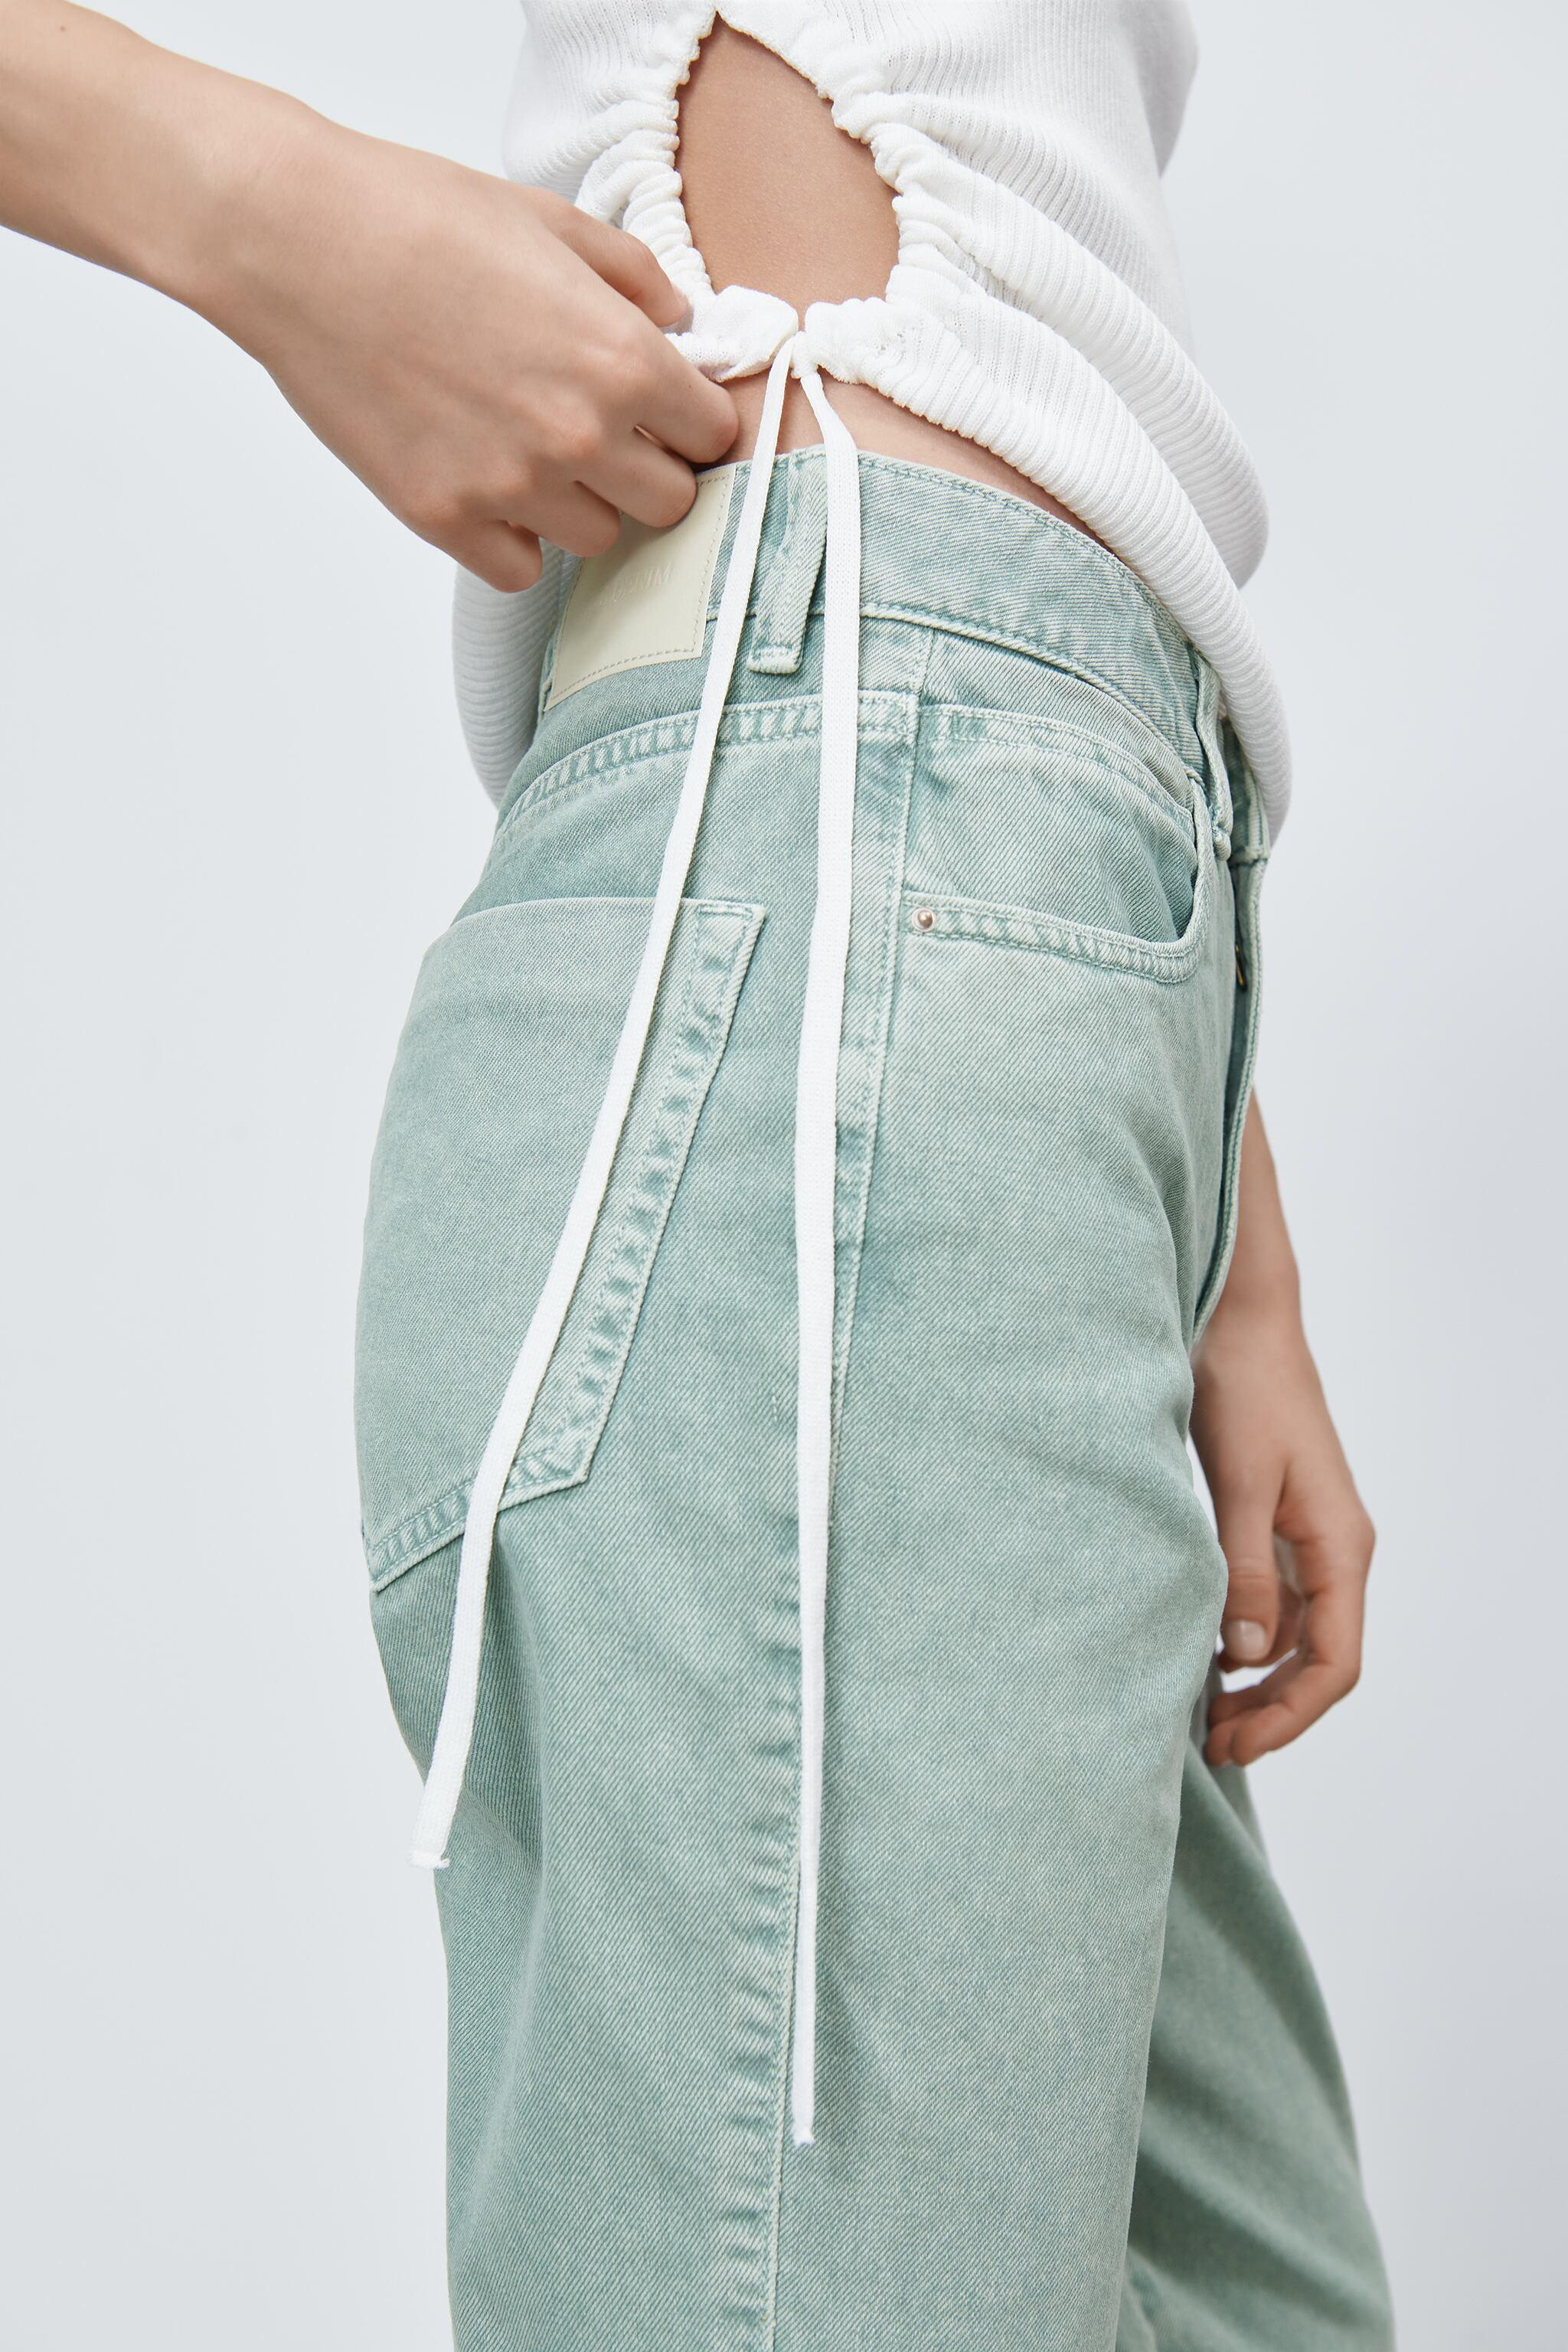 Z1975 HIGH RISE STRAIGHT JEANS 4